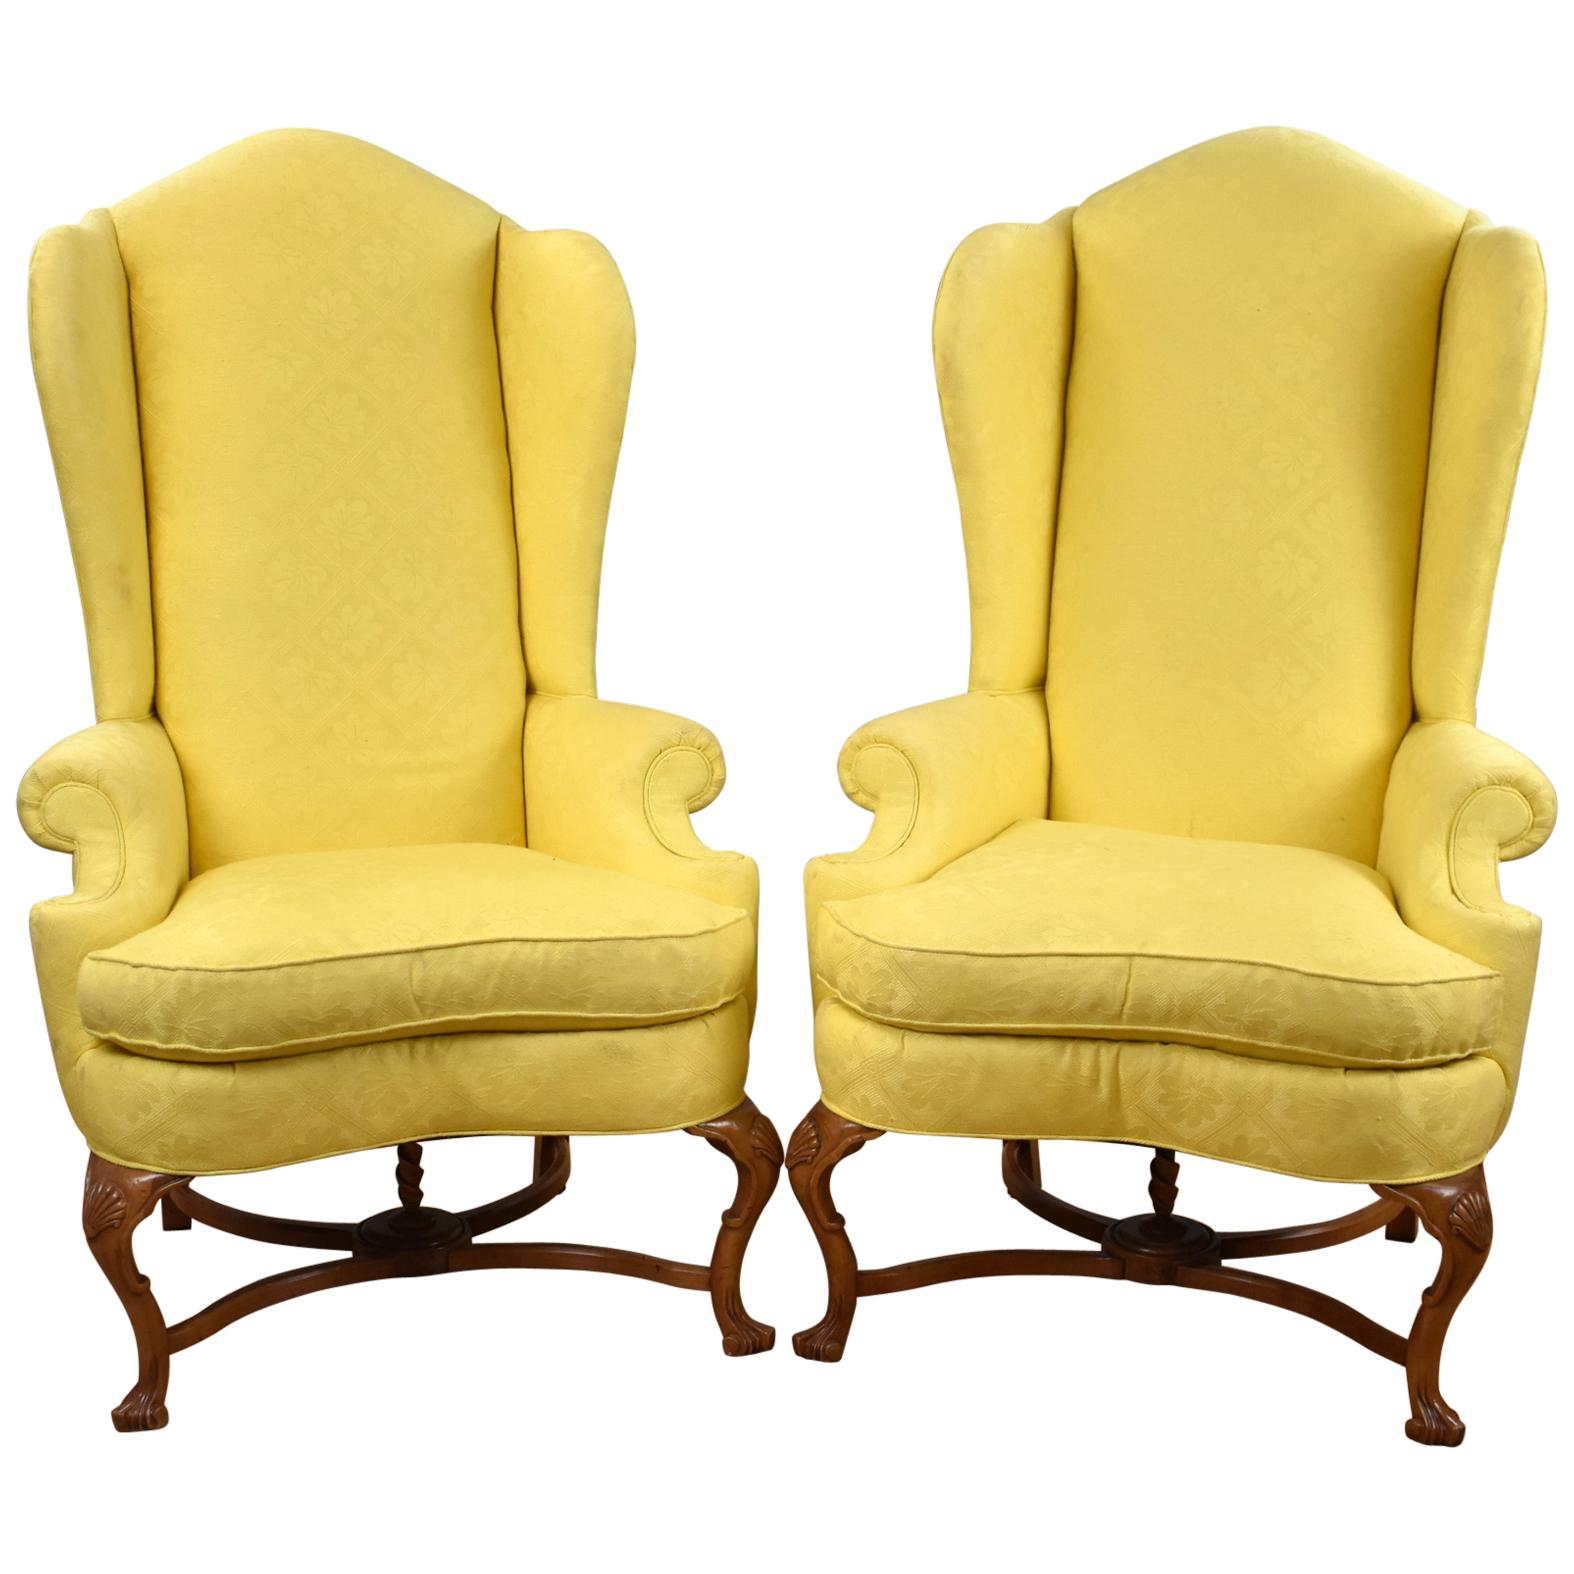 Pair of 20th Century English Queen Anne Style Wing Back Armchairs